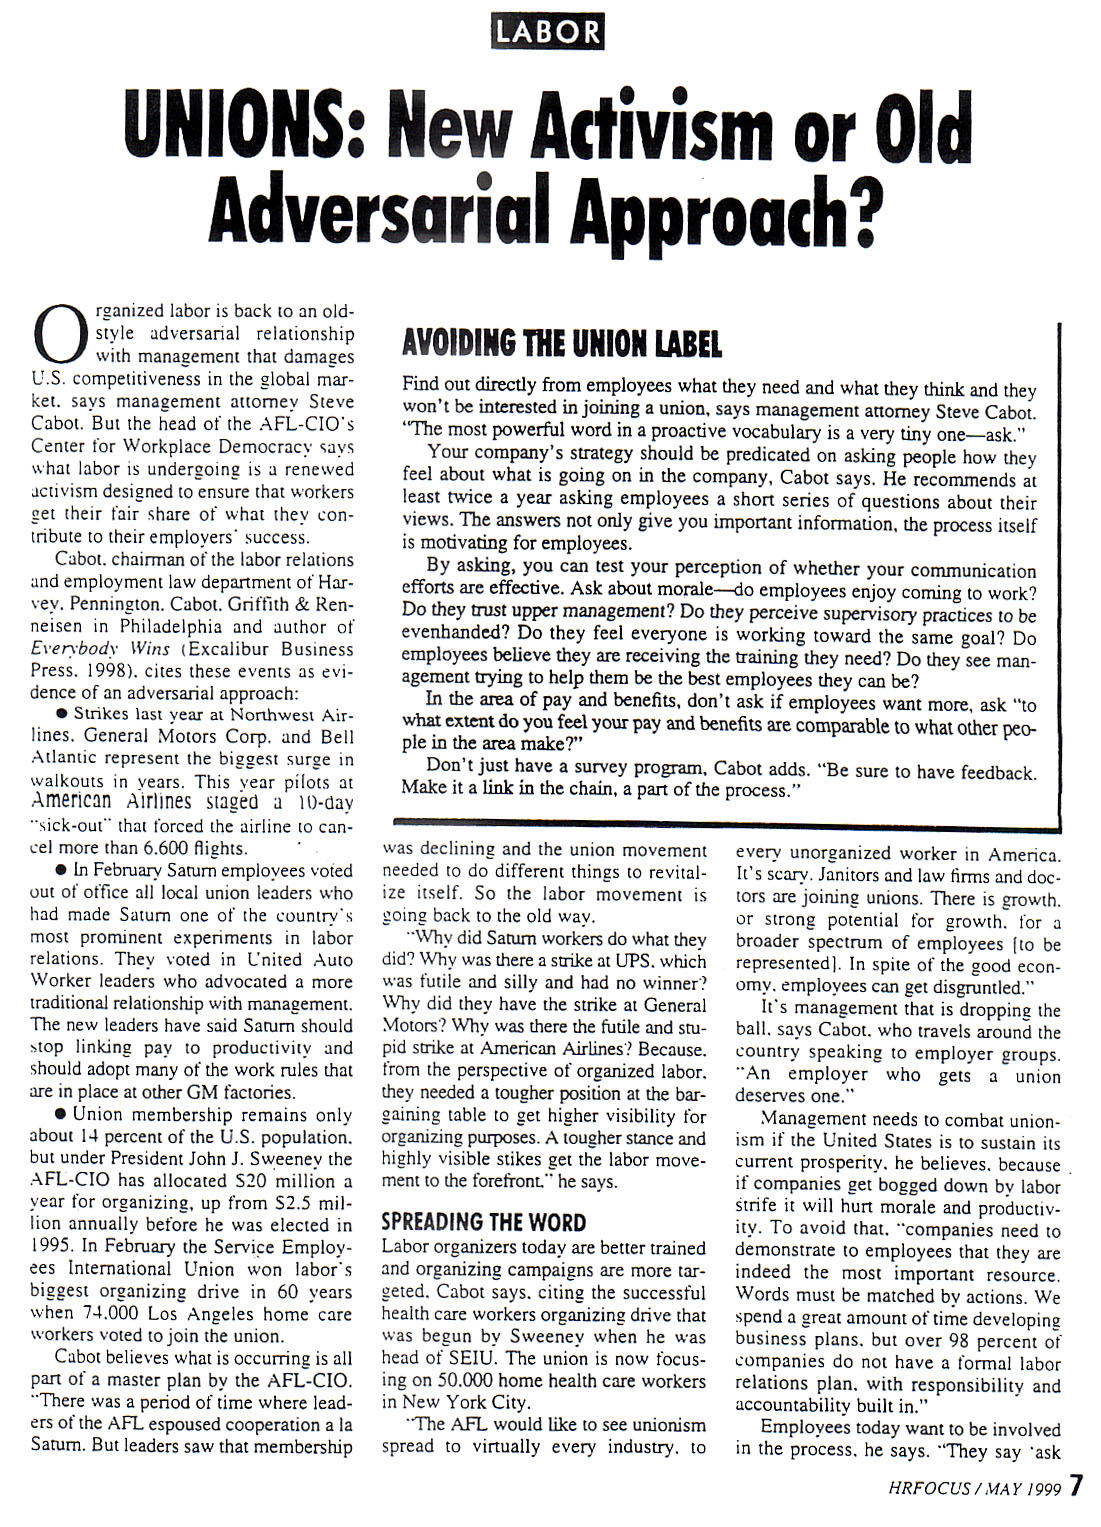 hr focus-may 1999-unions new activism or old adversarial approach  page 1.jpg